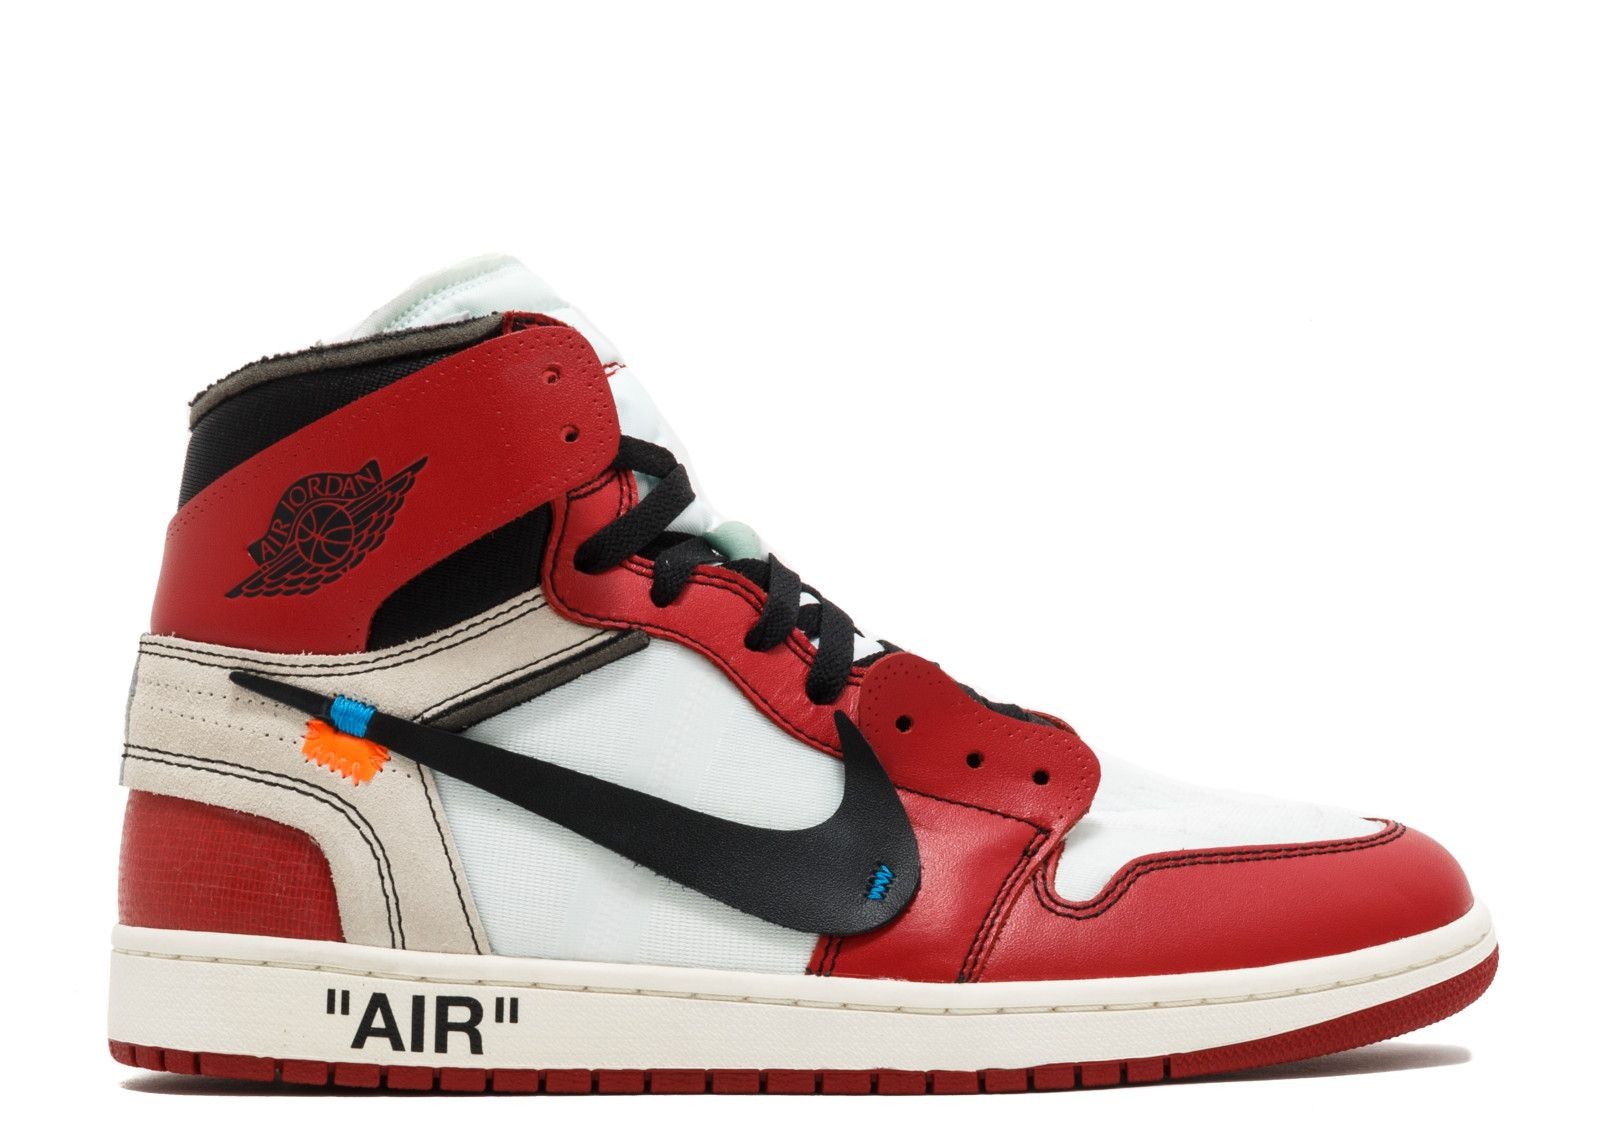 most expensive off white shoes